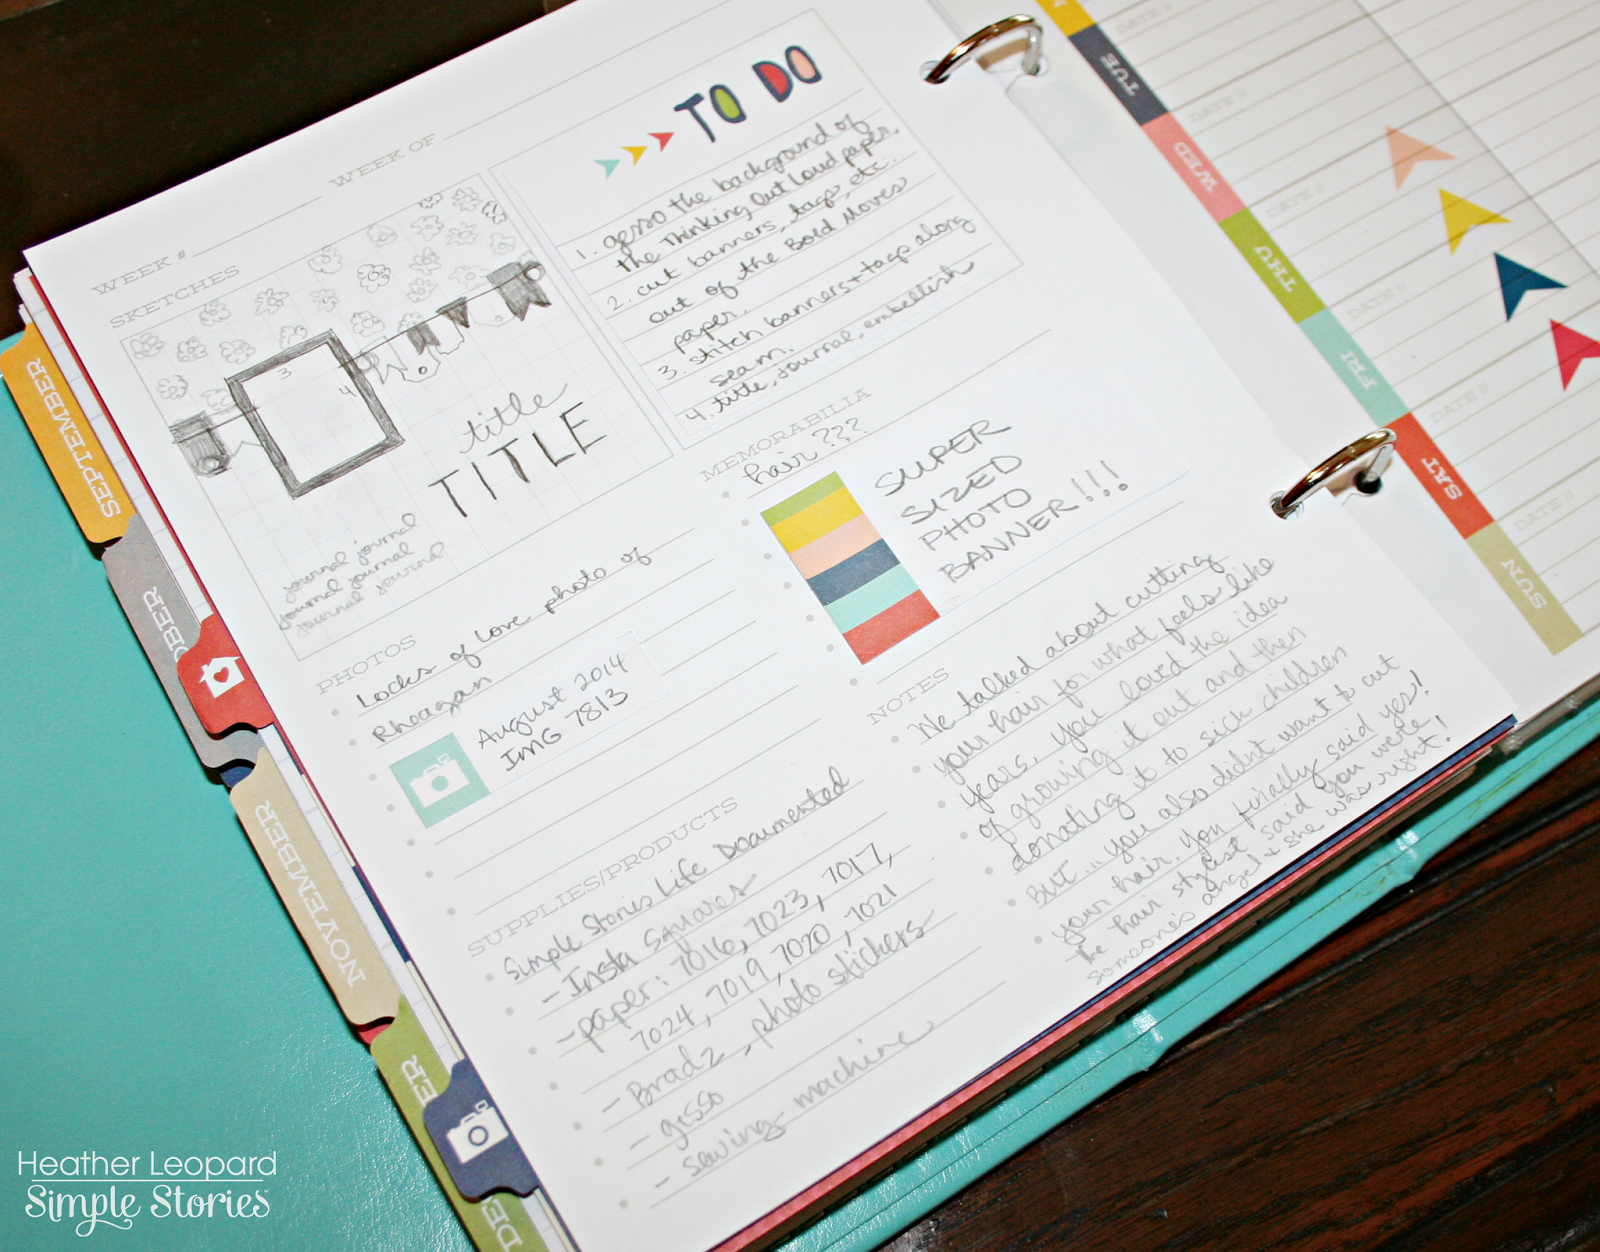 How to scrapbook good - The Good Life Layout Sketch Planner Scrapbook Layout Heather Leopard Simple Stories Simplestories